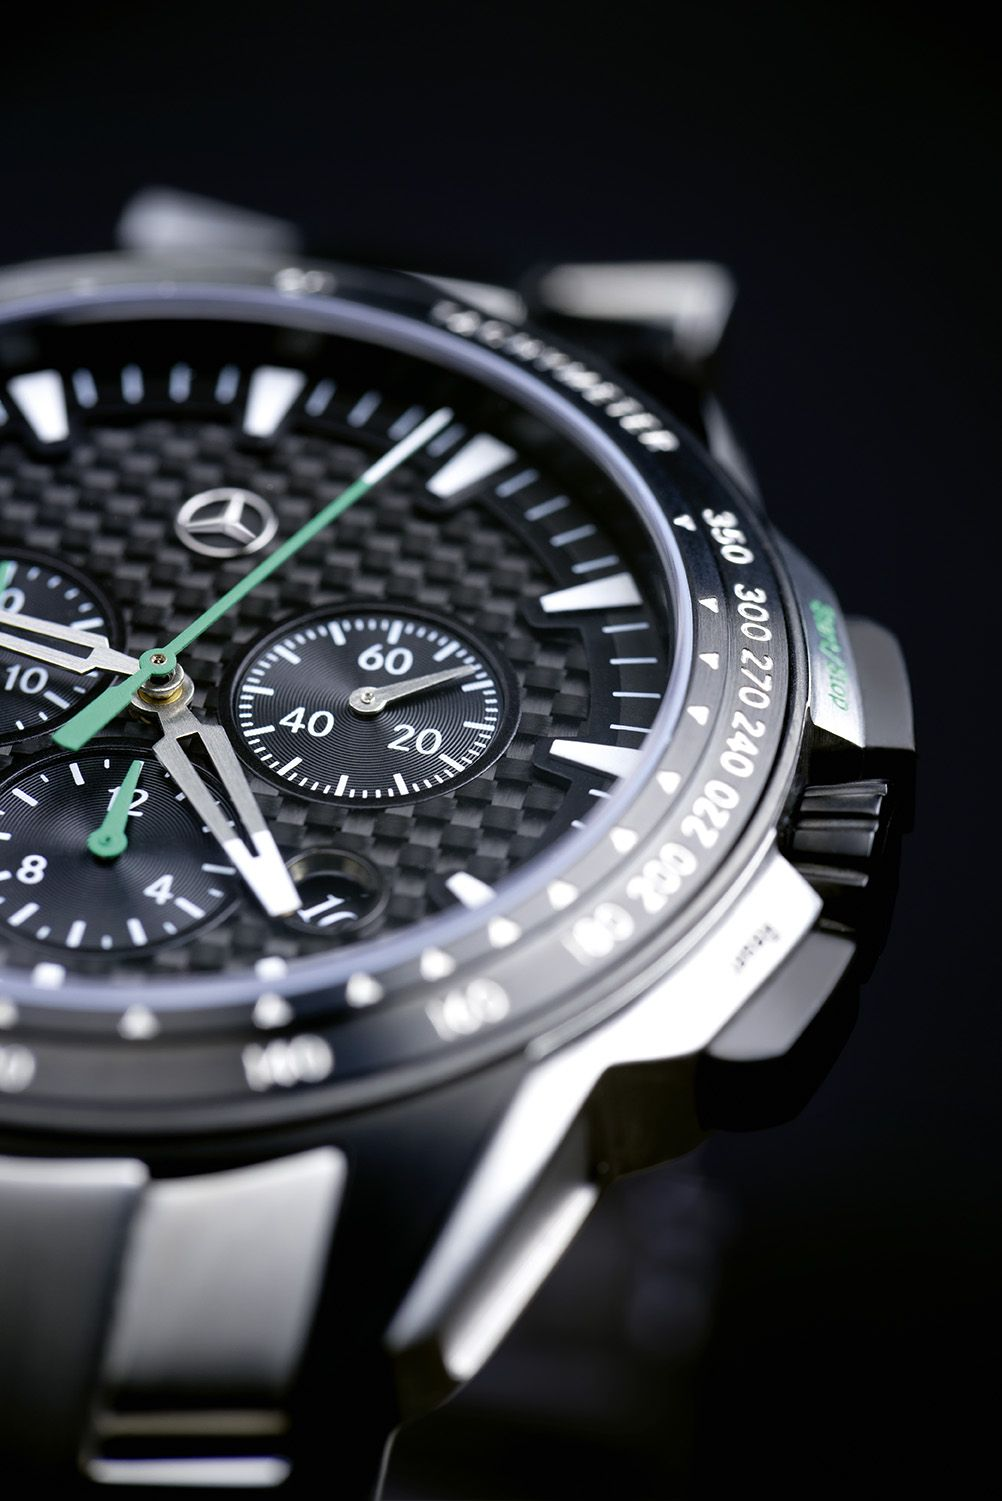 The Mercedes-Benz Motorsport Chronograph for men - where precision